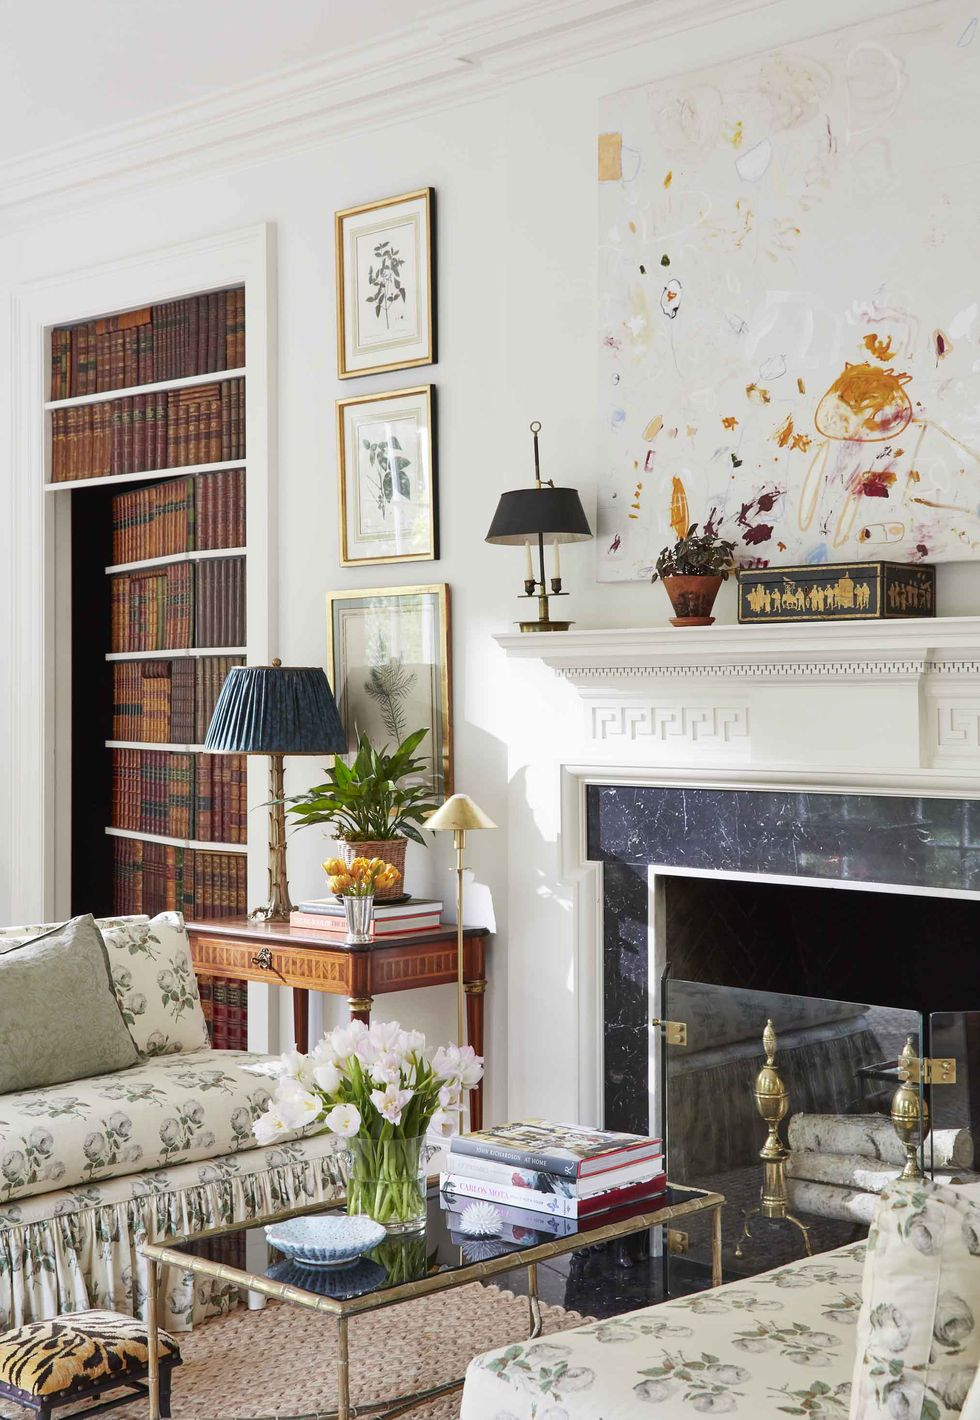 Traditional_perfection_home-tour=living-room-fireplace